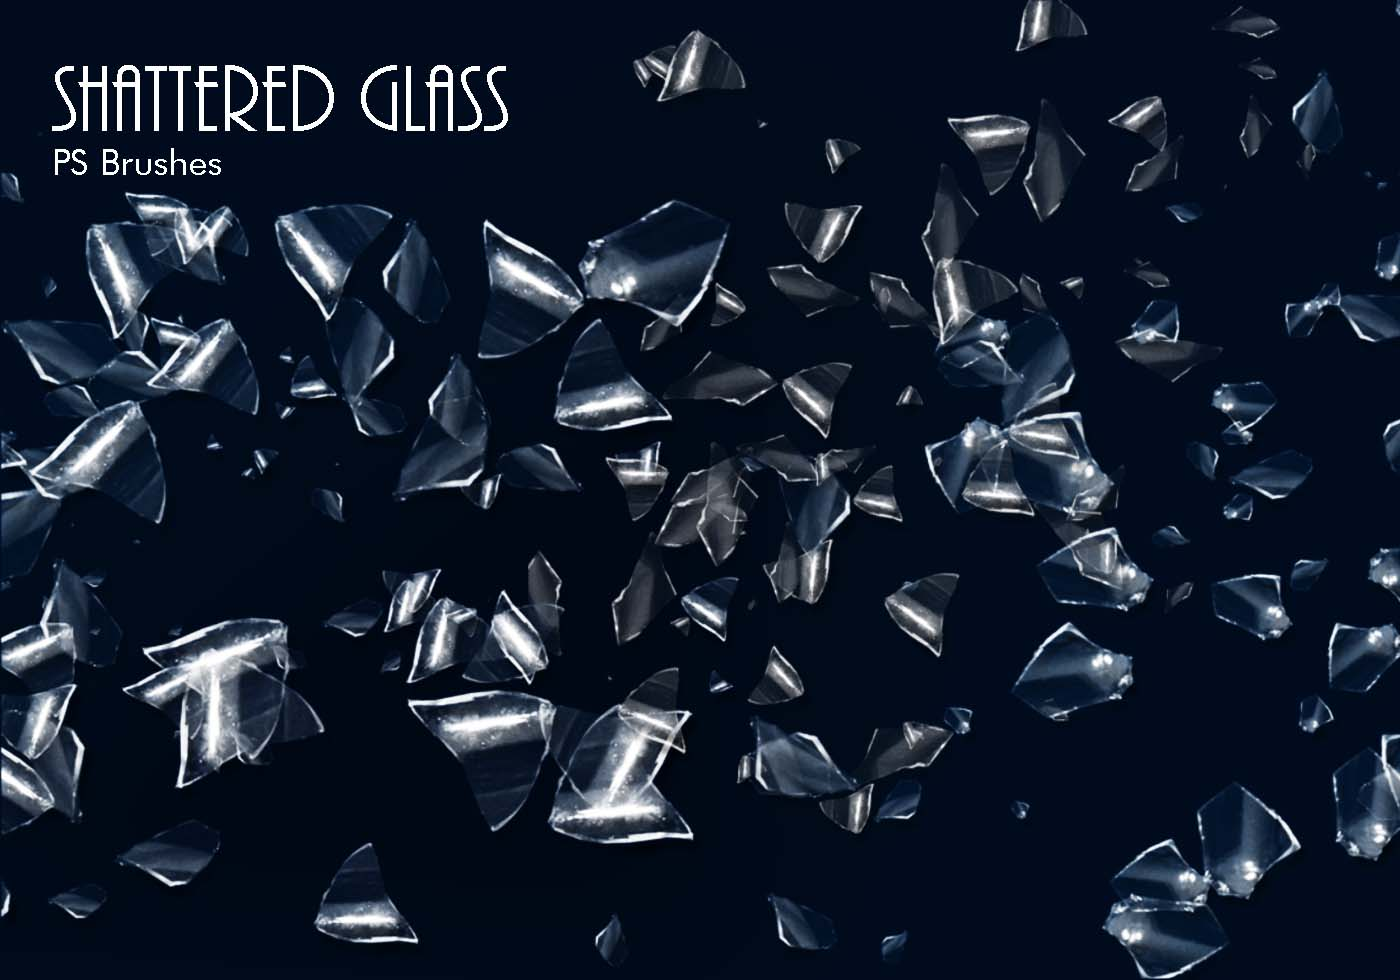 20 Shattered Glass Ps Brushes Abr Vol 5 Free Photoshop